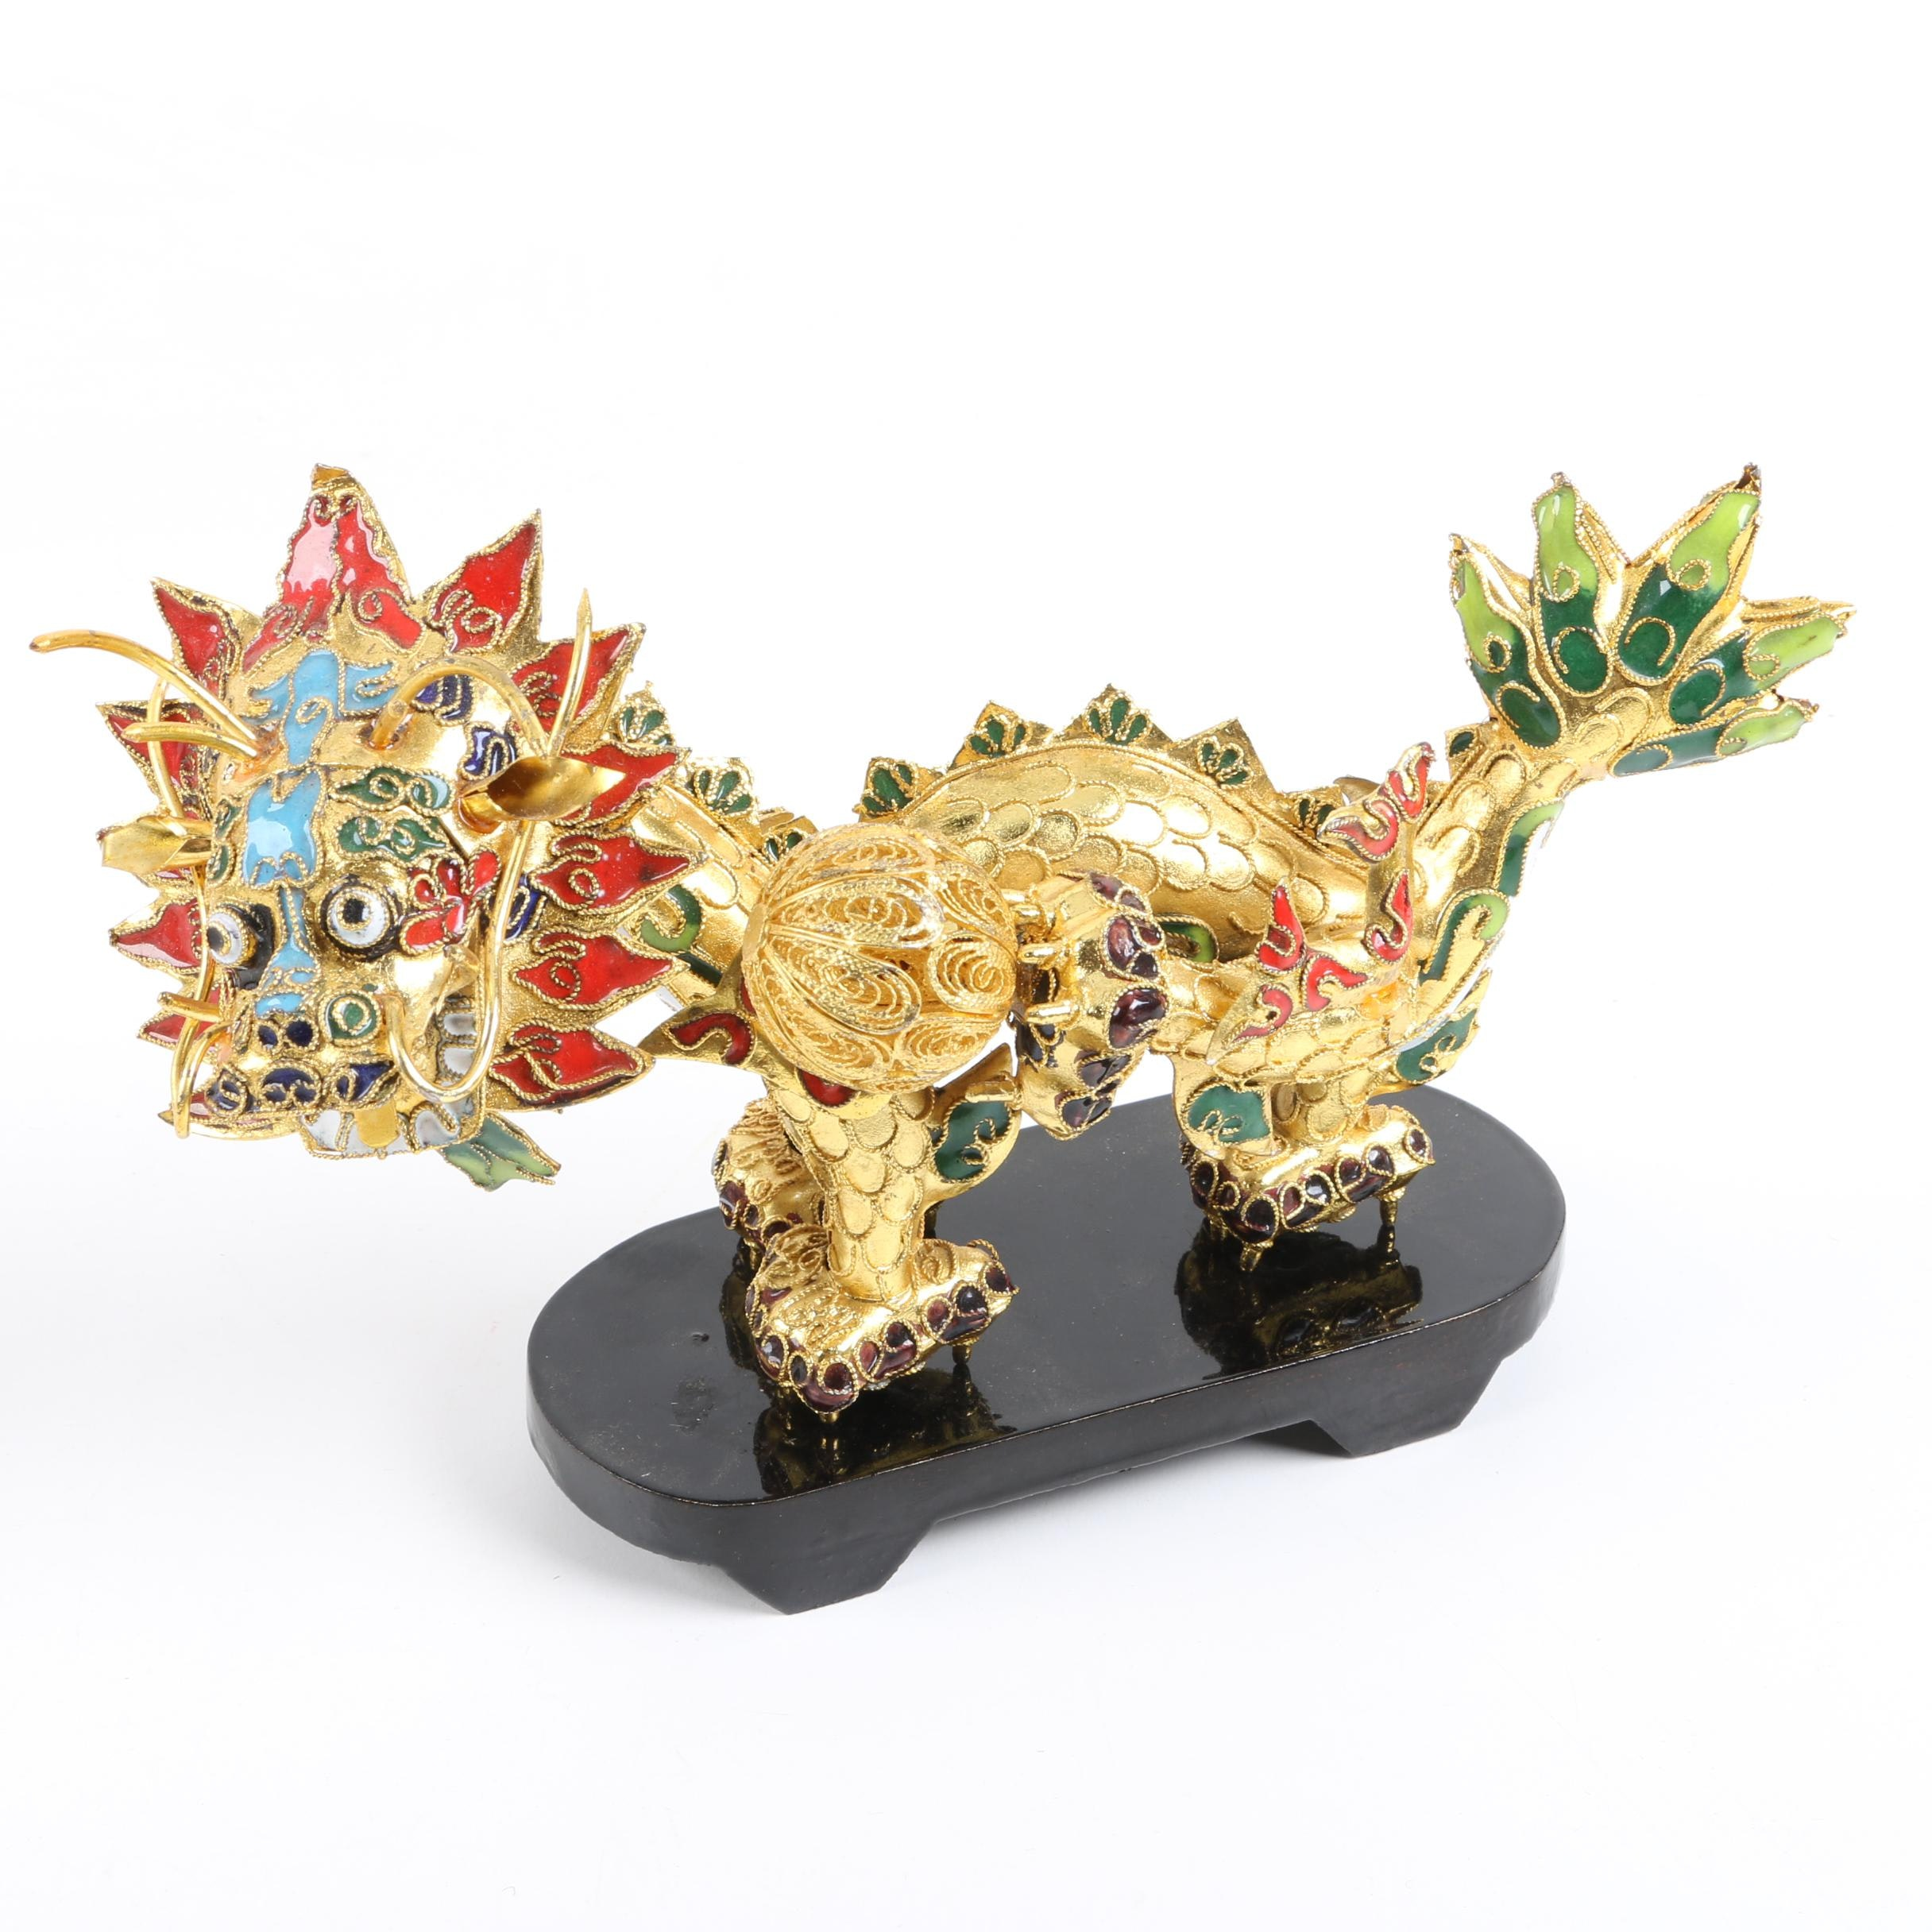 "Chinese Inspired Gold Tone and Cloisonné ""Dragon with Pearl"" Sculpture on Base"